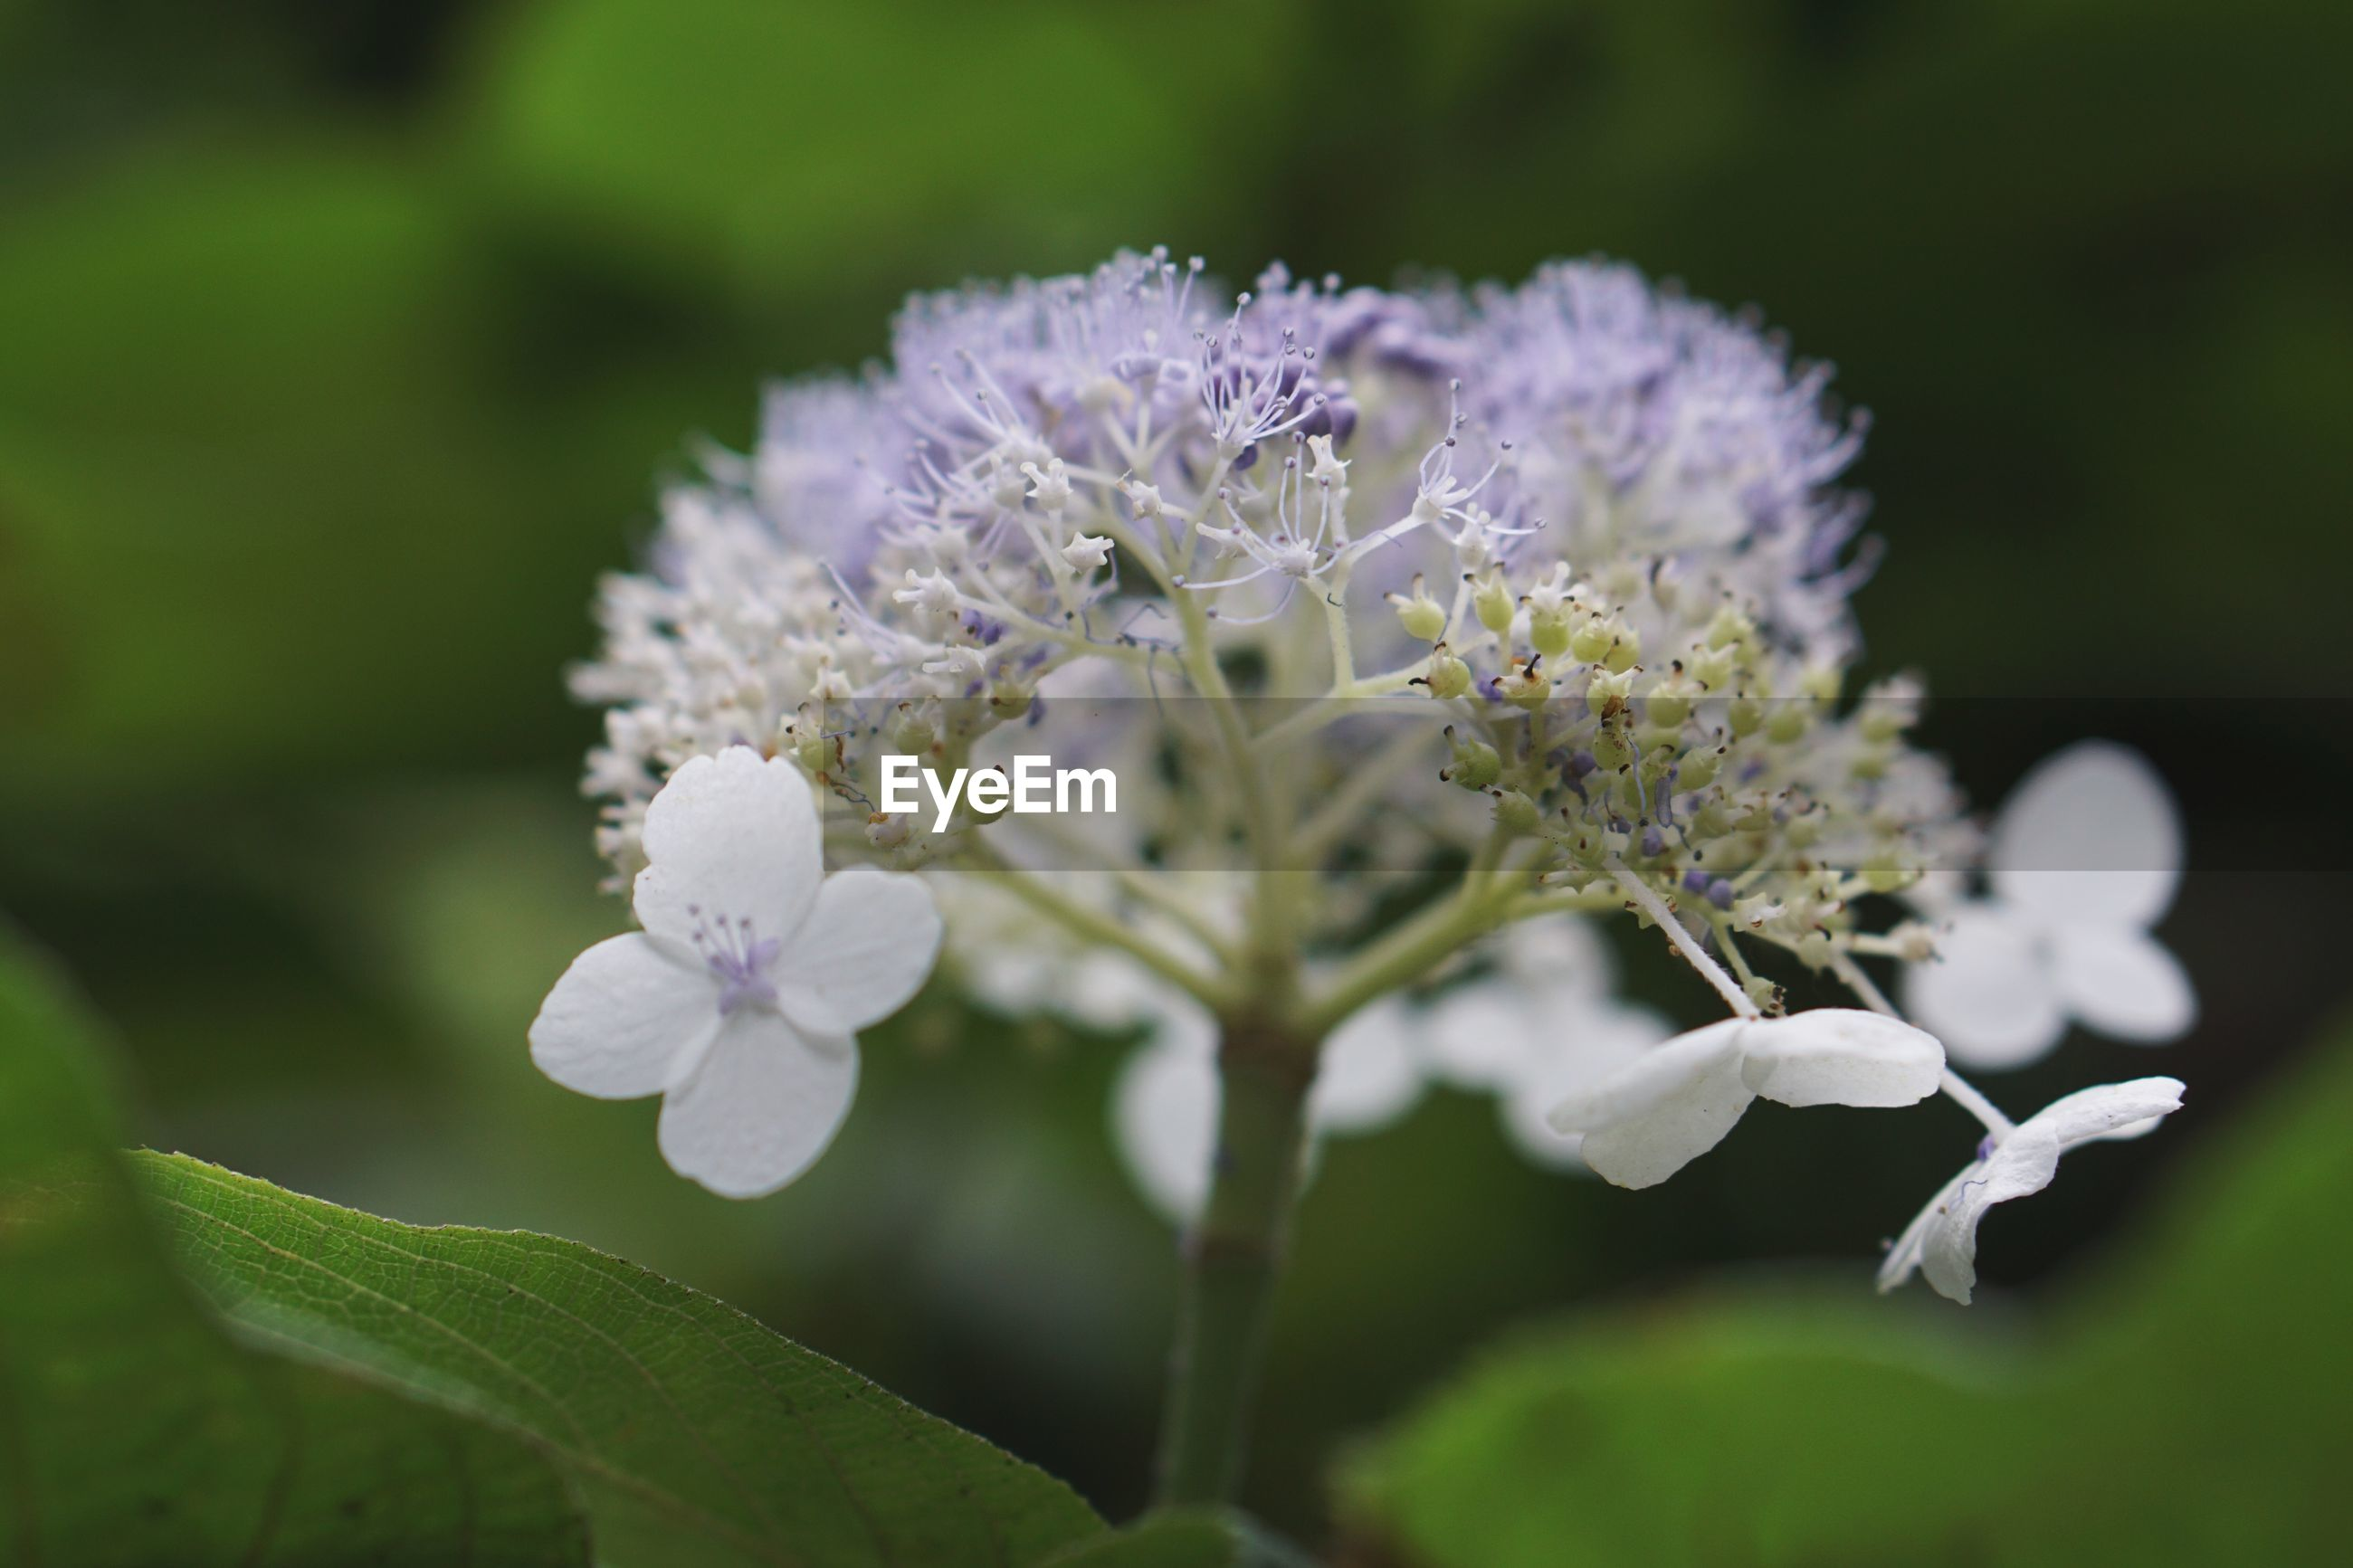 flower, flowering plant, plant, vulnerability, fragility, growth, beauty in nature, freshness, close-up, petal, white color, flower head, inflorescence, selective focus, focus on foreground, no people, plant part, nature, leaf, day, purple, pollen, softness